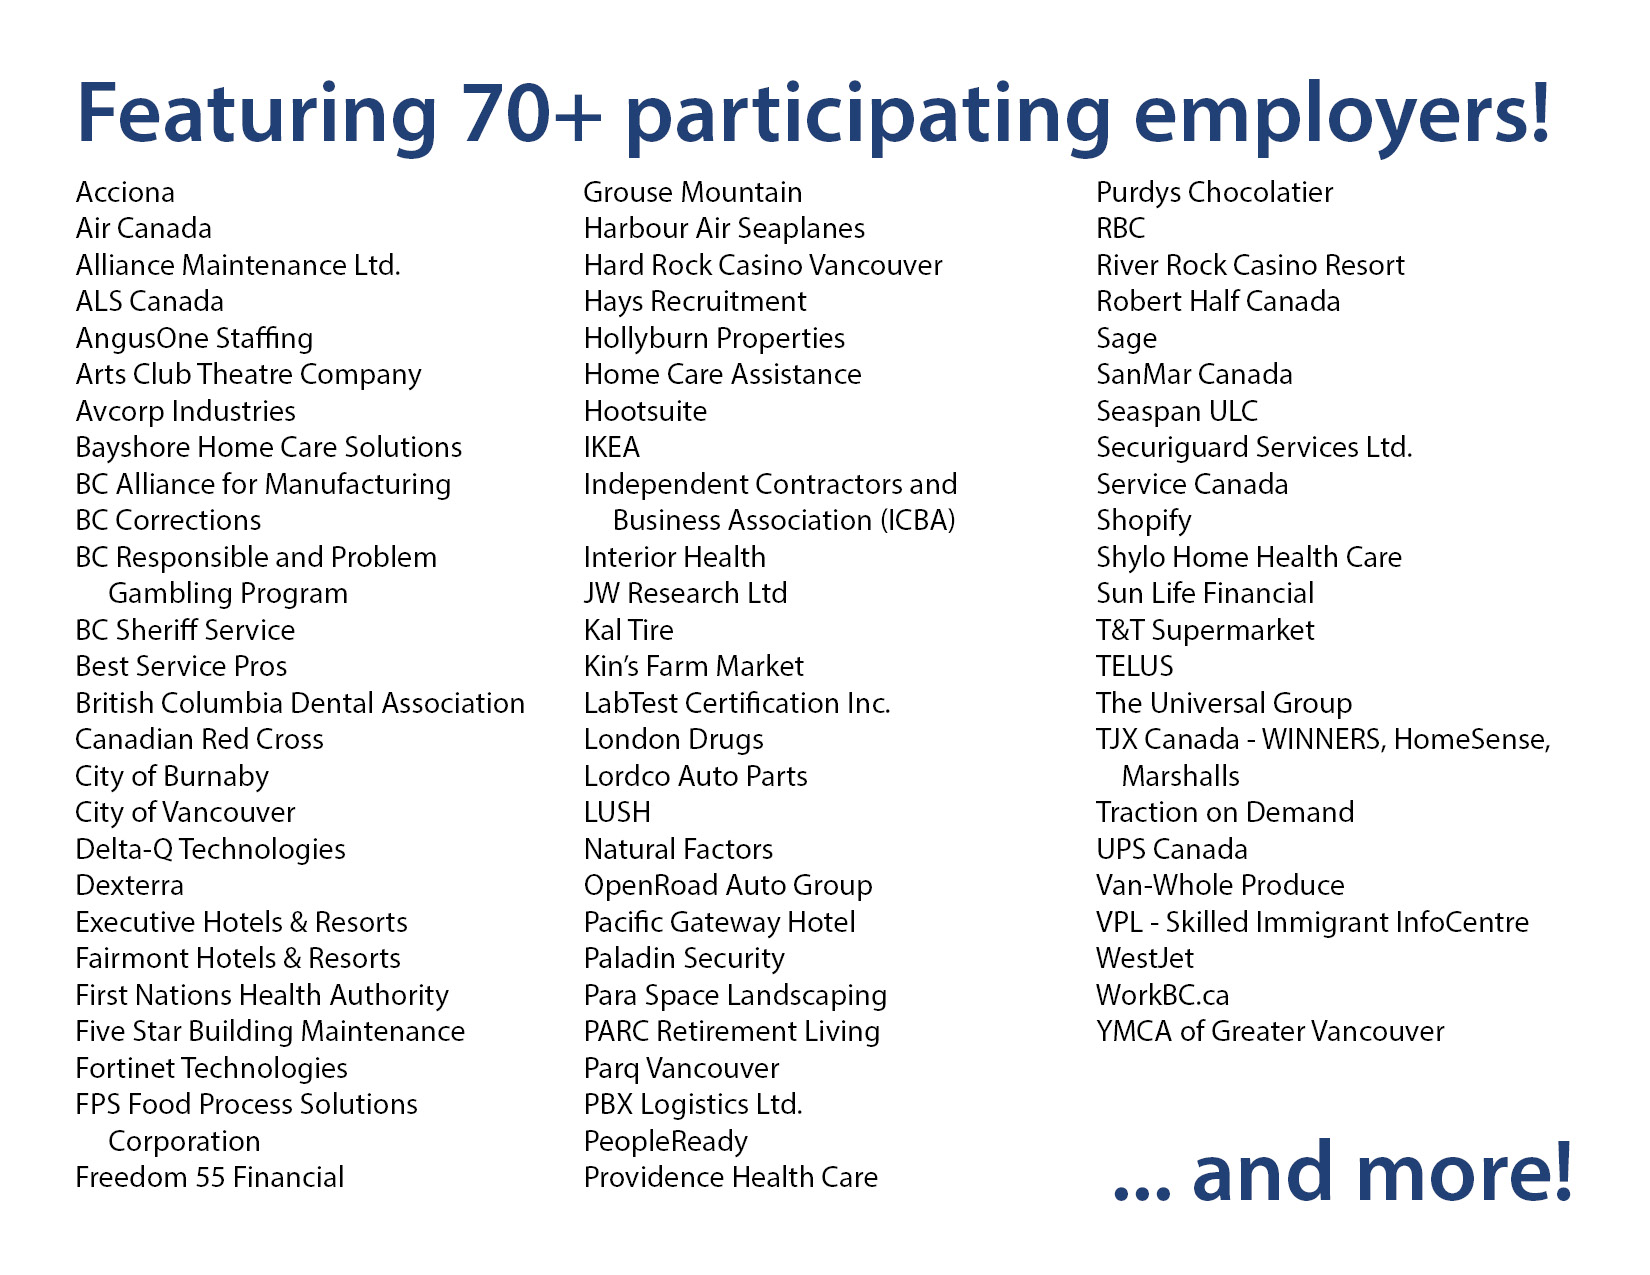 List of Participating Employers at MOSAIC's Job Fair